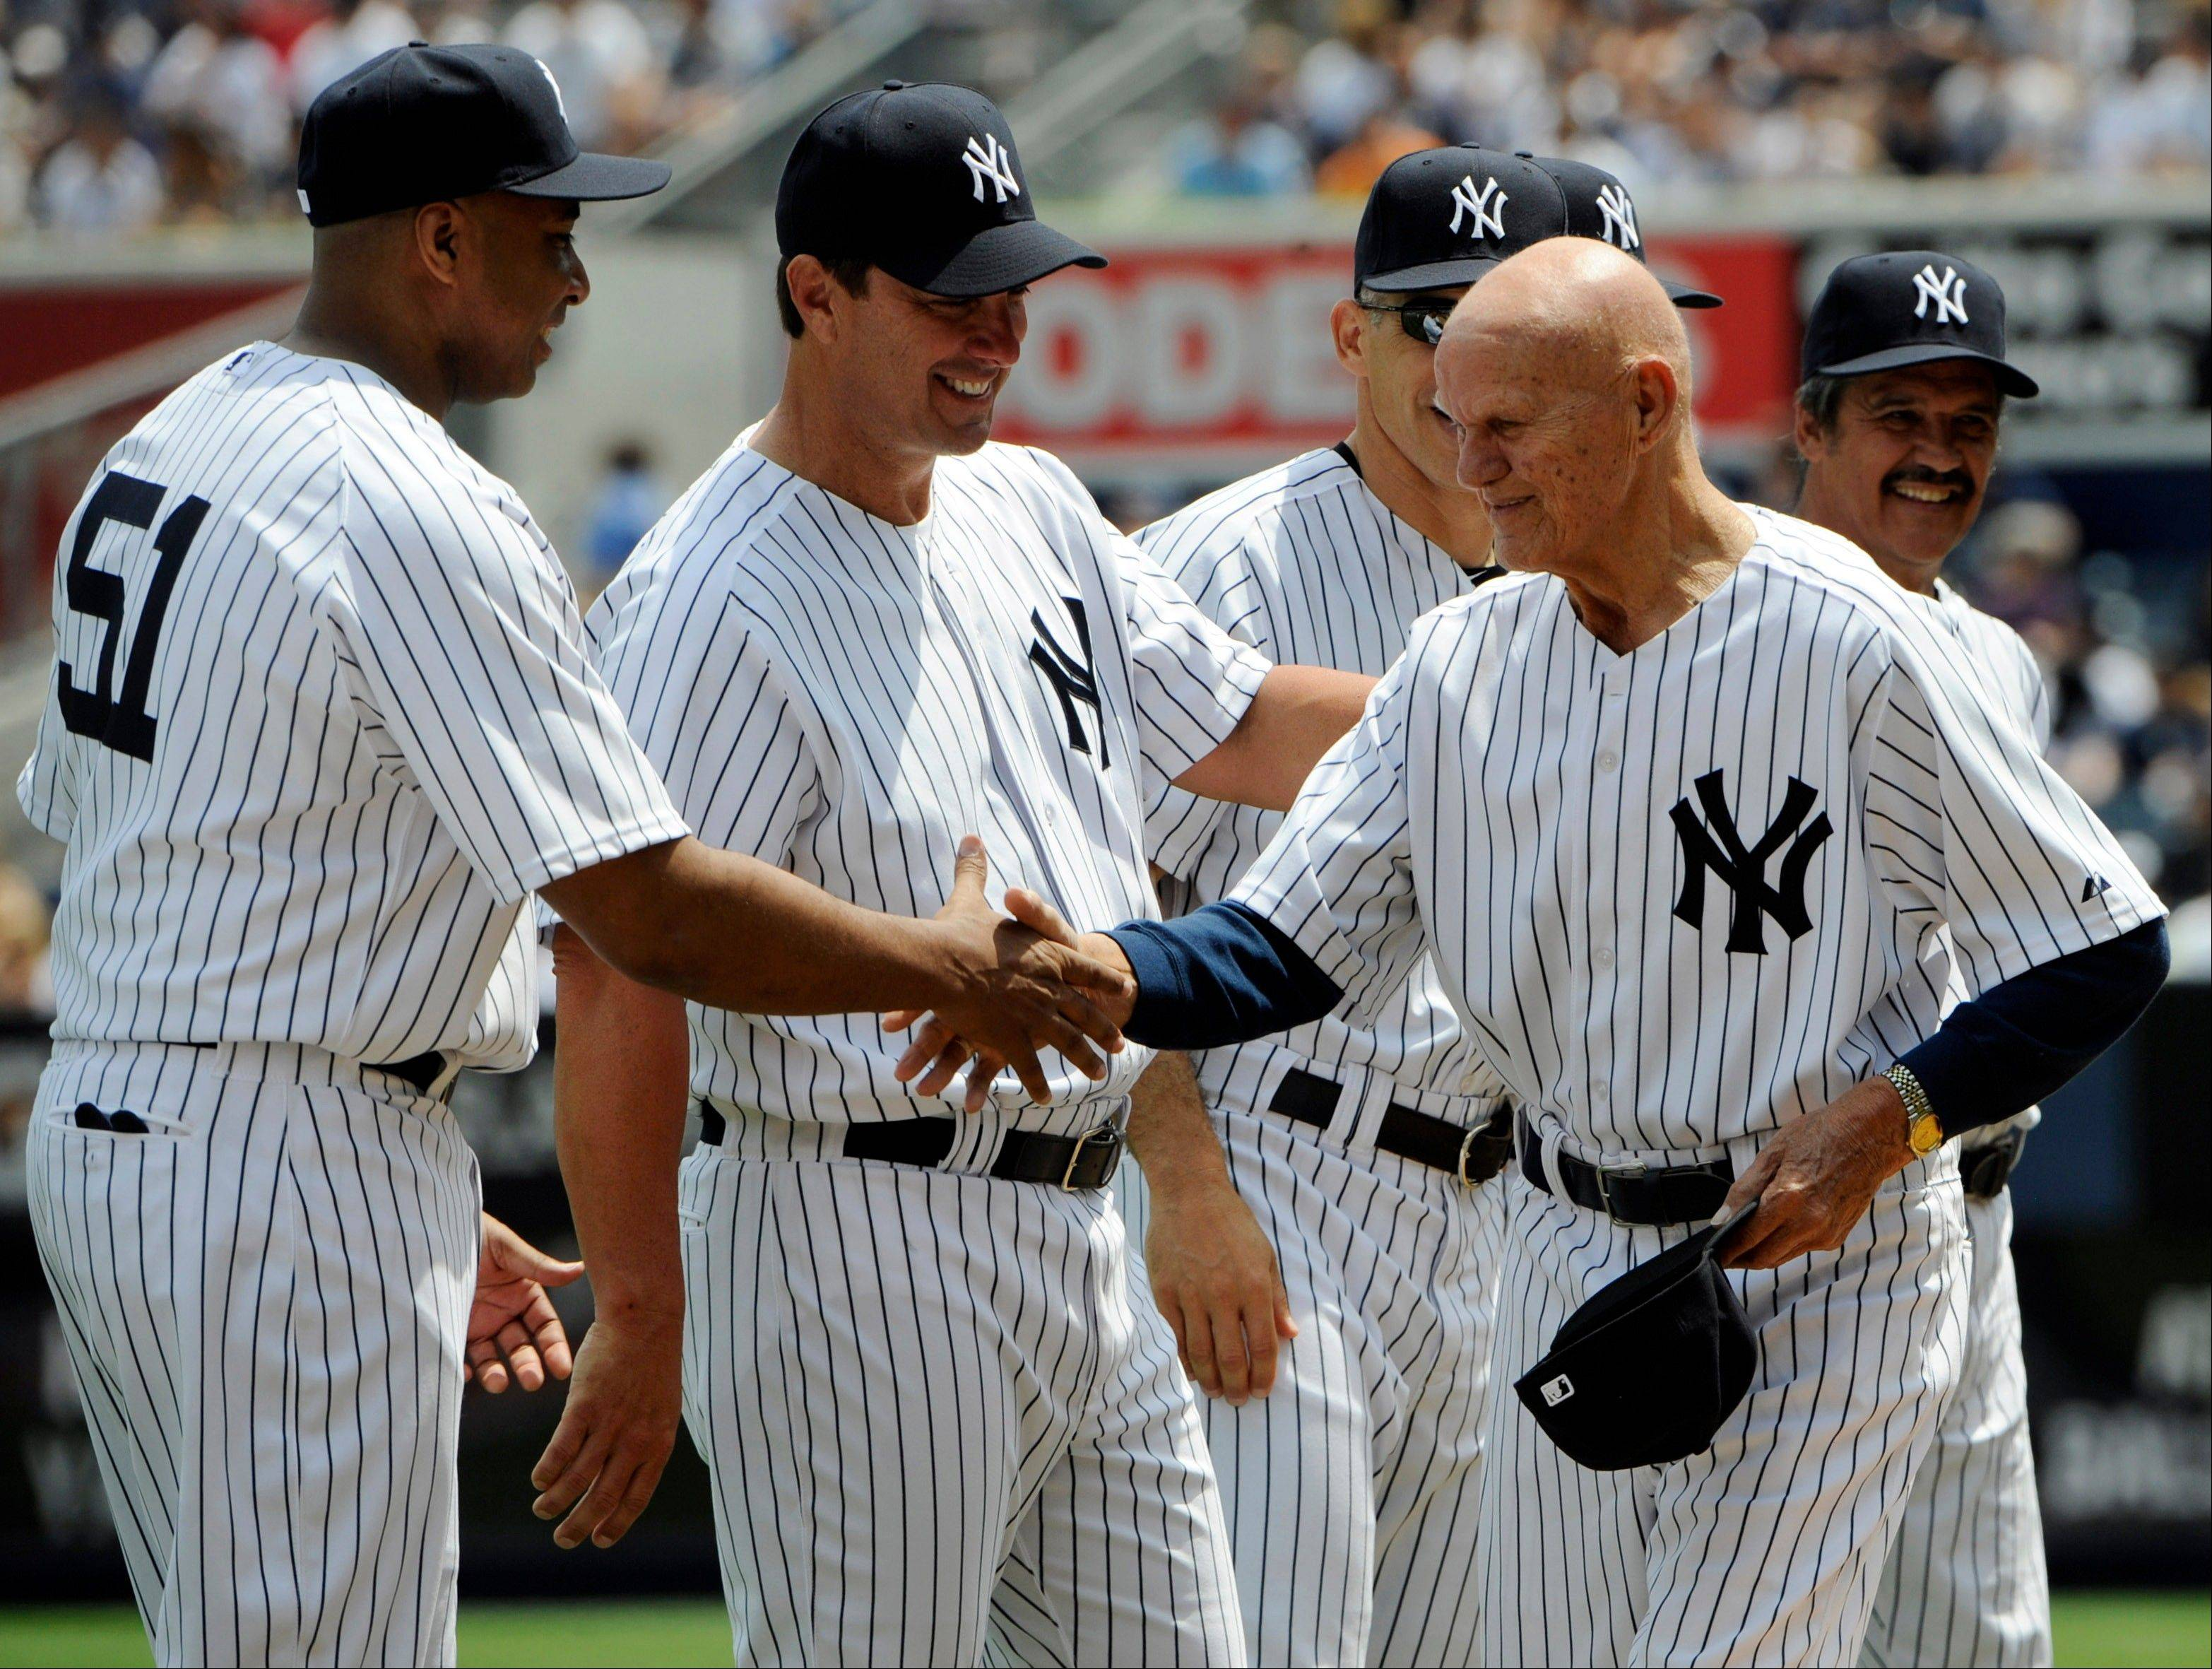 "In this June 26, 2011, file photo, former New York Yankees first baseman BIll ""Moose"" Skowron, right, shakes hands with Bernie Williams, left, as Tino Martinez looks on during Old Timers' Day ceremonies at Yankee Stadium in New York. Skowron, a four-time All-Star first baseman who helped the Yankees win four World Series titles in the 1950s and 1960s, died Friday, April 27, 2012, at Northwest Community Hospital in Arlington Heights, Ill. He was 81."